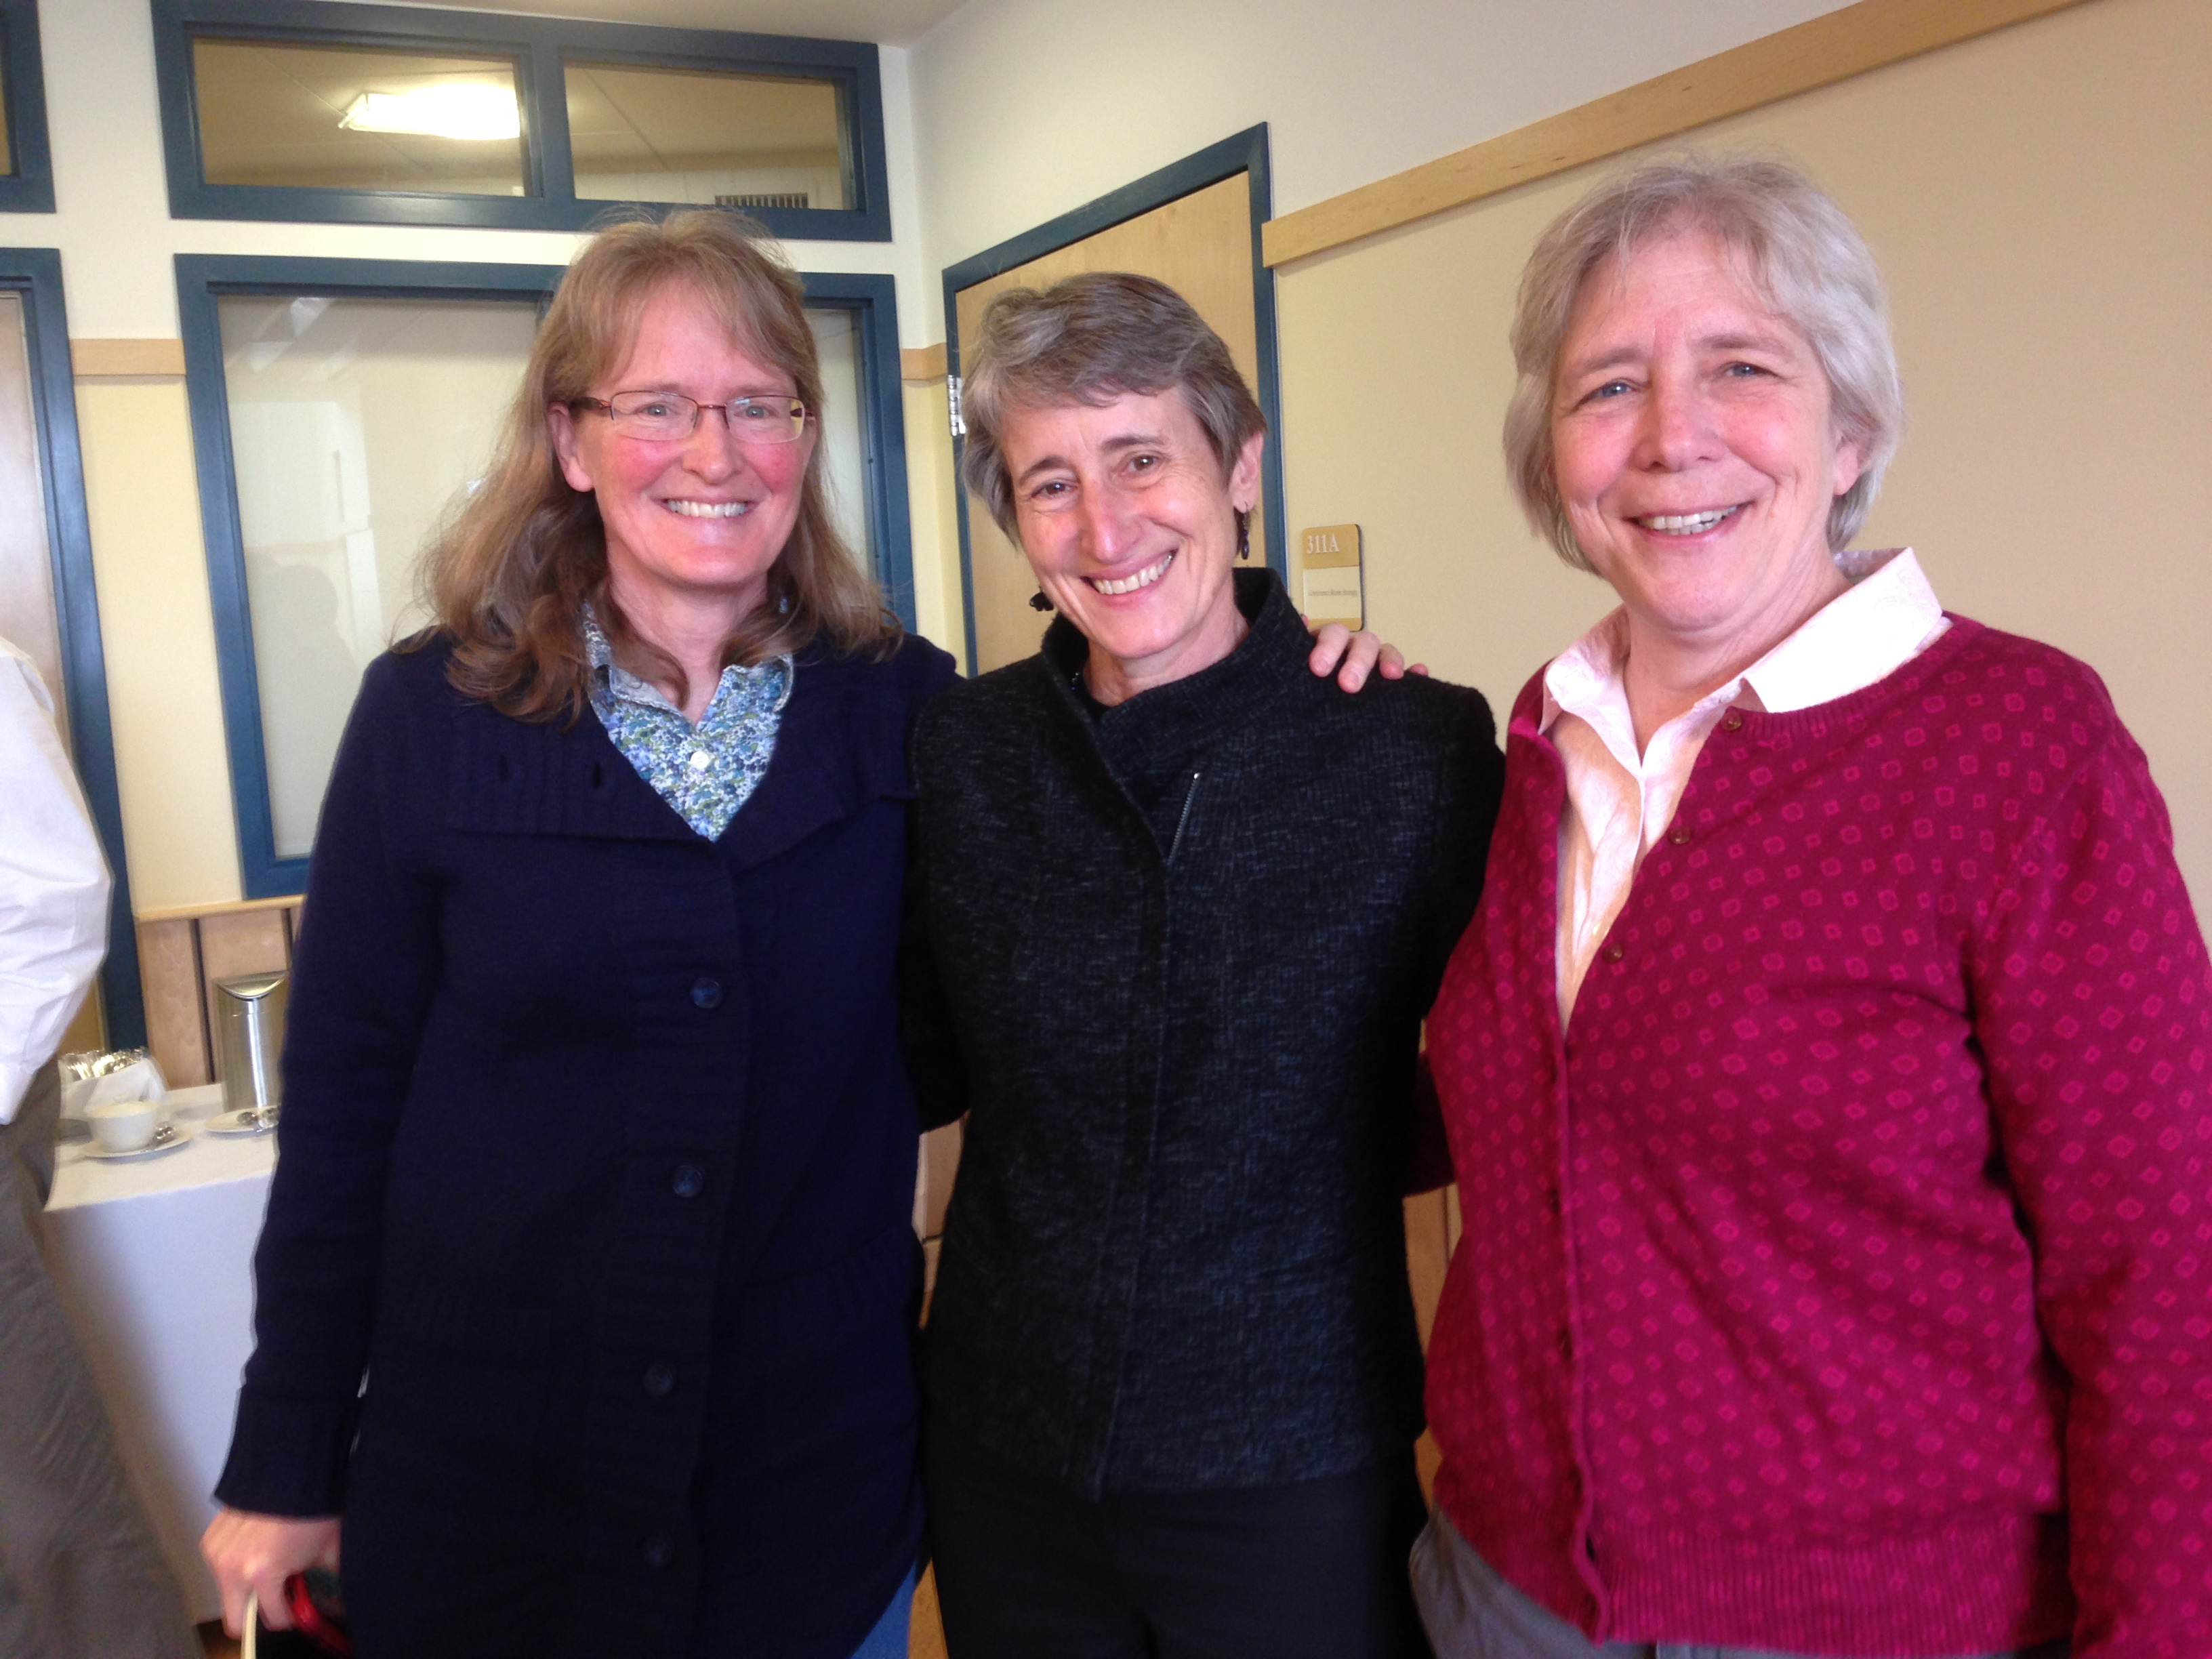 Vermont Unit Leader Donna Parrish (right) and Asst Unit Leader Terri Donovan (left) with Department of Interior Secretary Sally Jewell.